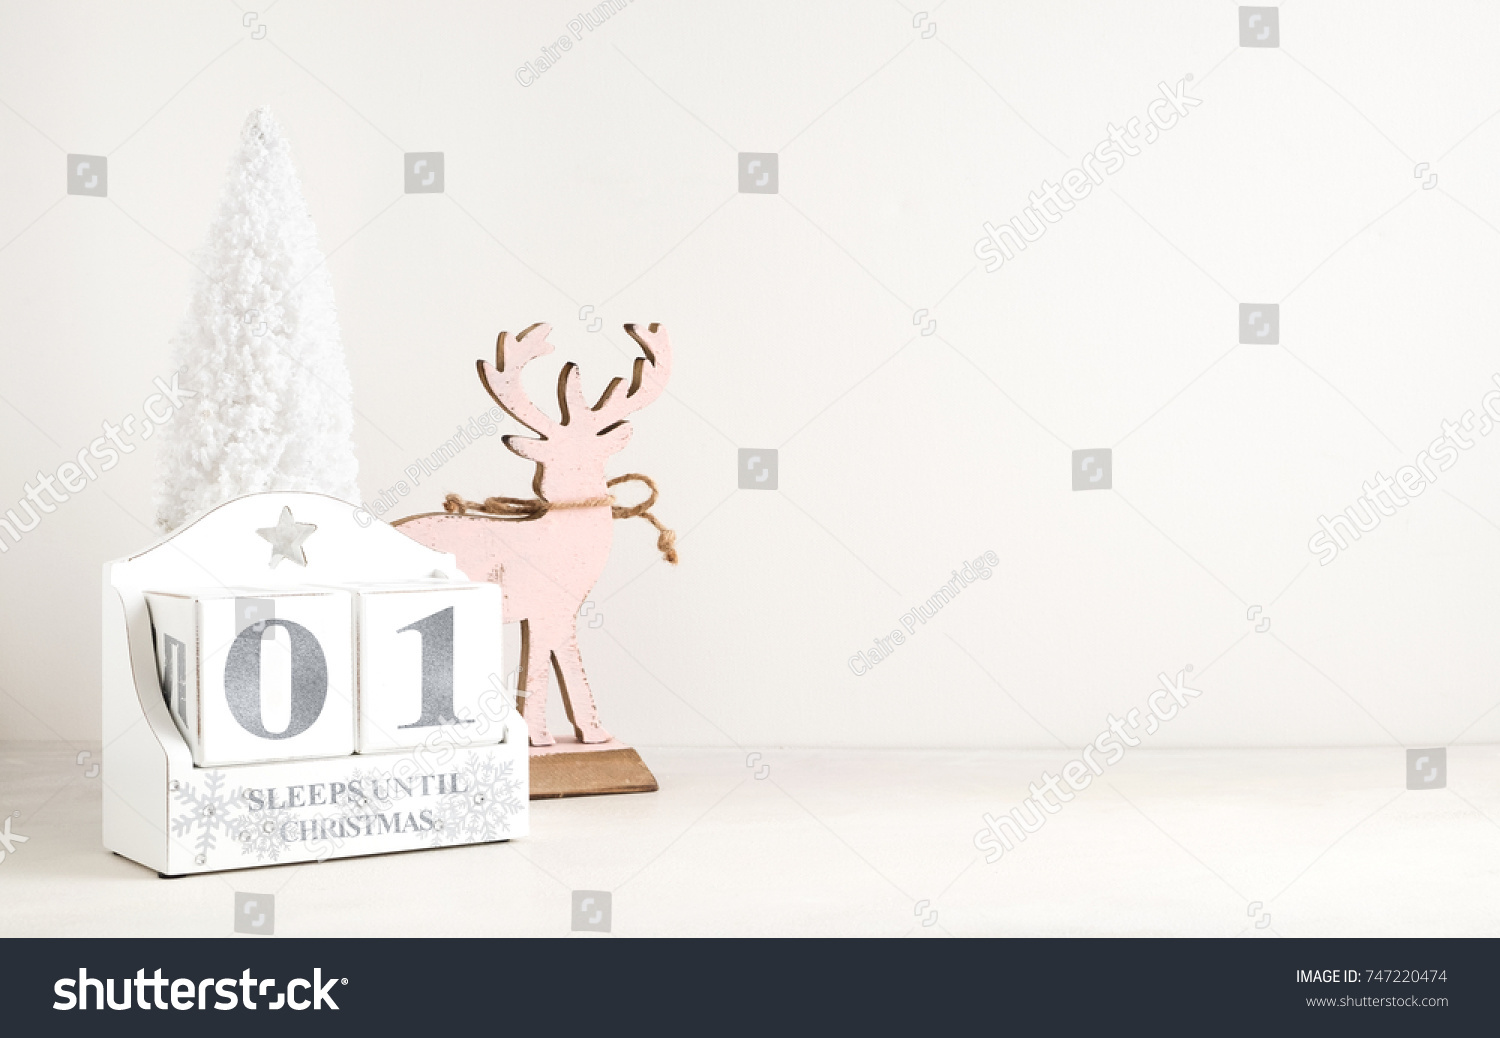 December Calendar Christmas Displays Number Sleepsdays Stock Photo ...